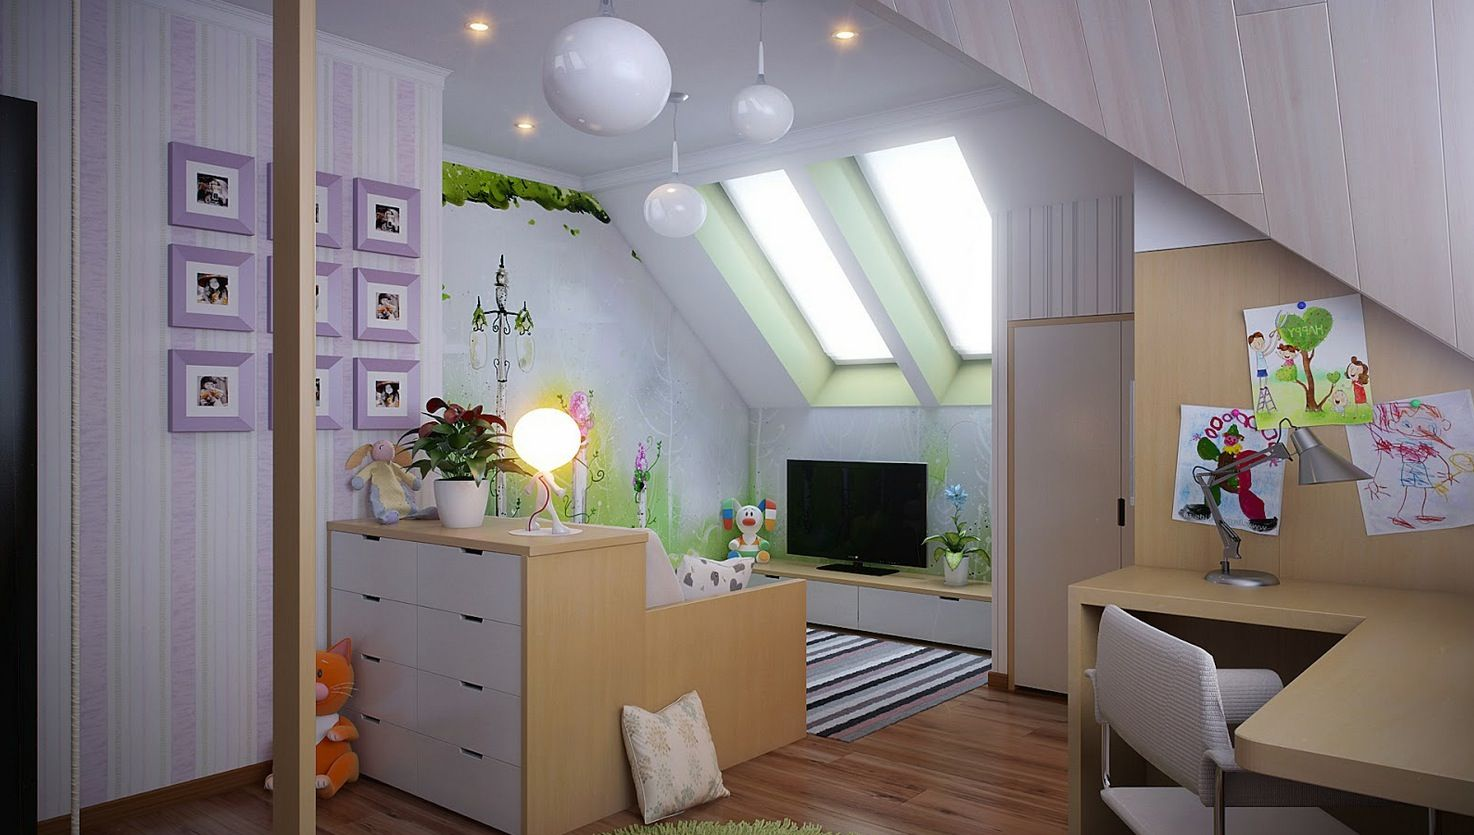 Home gt products catalog gt office partition gt room iders glass wall - Attic Bedroom Design And D Cor Tips